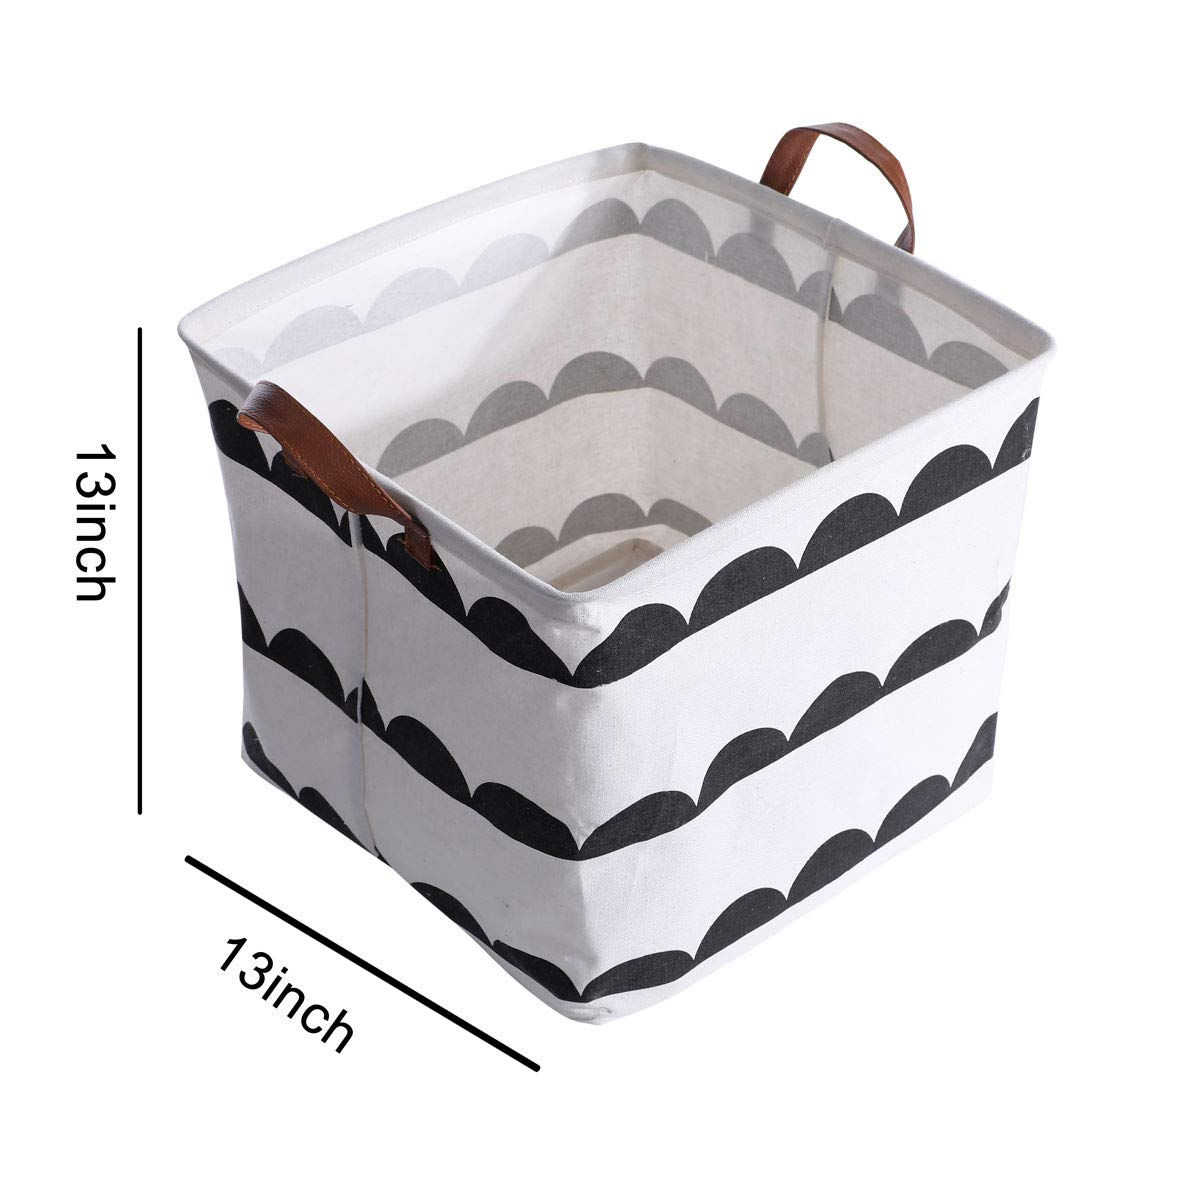 Large Hamper Laundry Basket ROYTXT Collapsible Cubes Storage Bin Foldable Dirty Clothes Bag with Handles Home Bedroom Office Toys Books Organizer